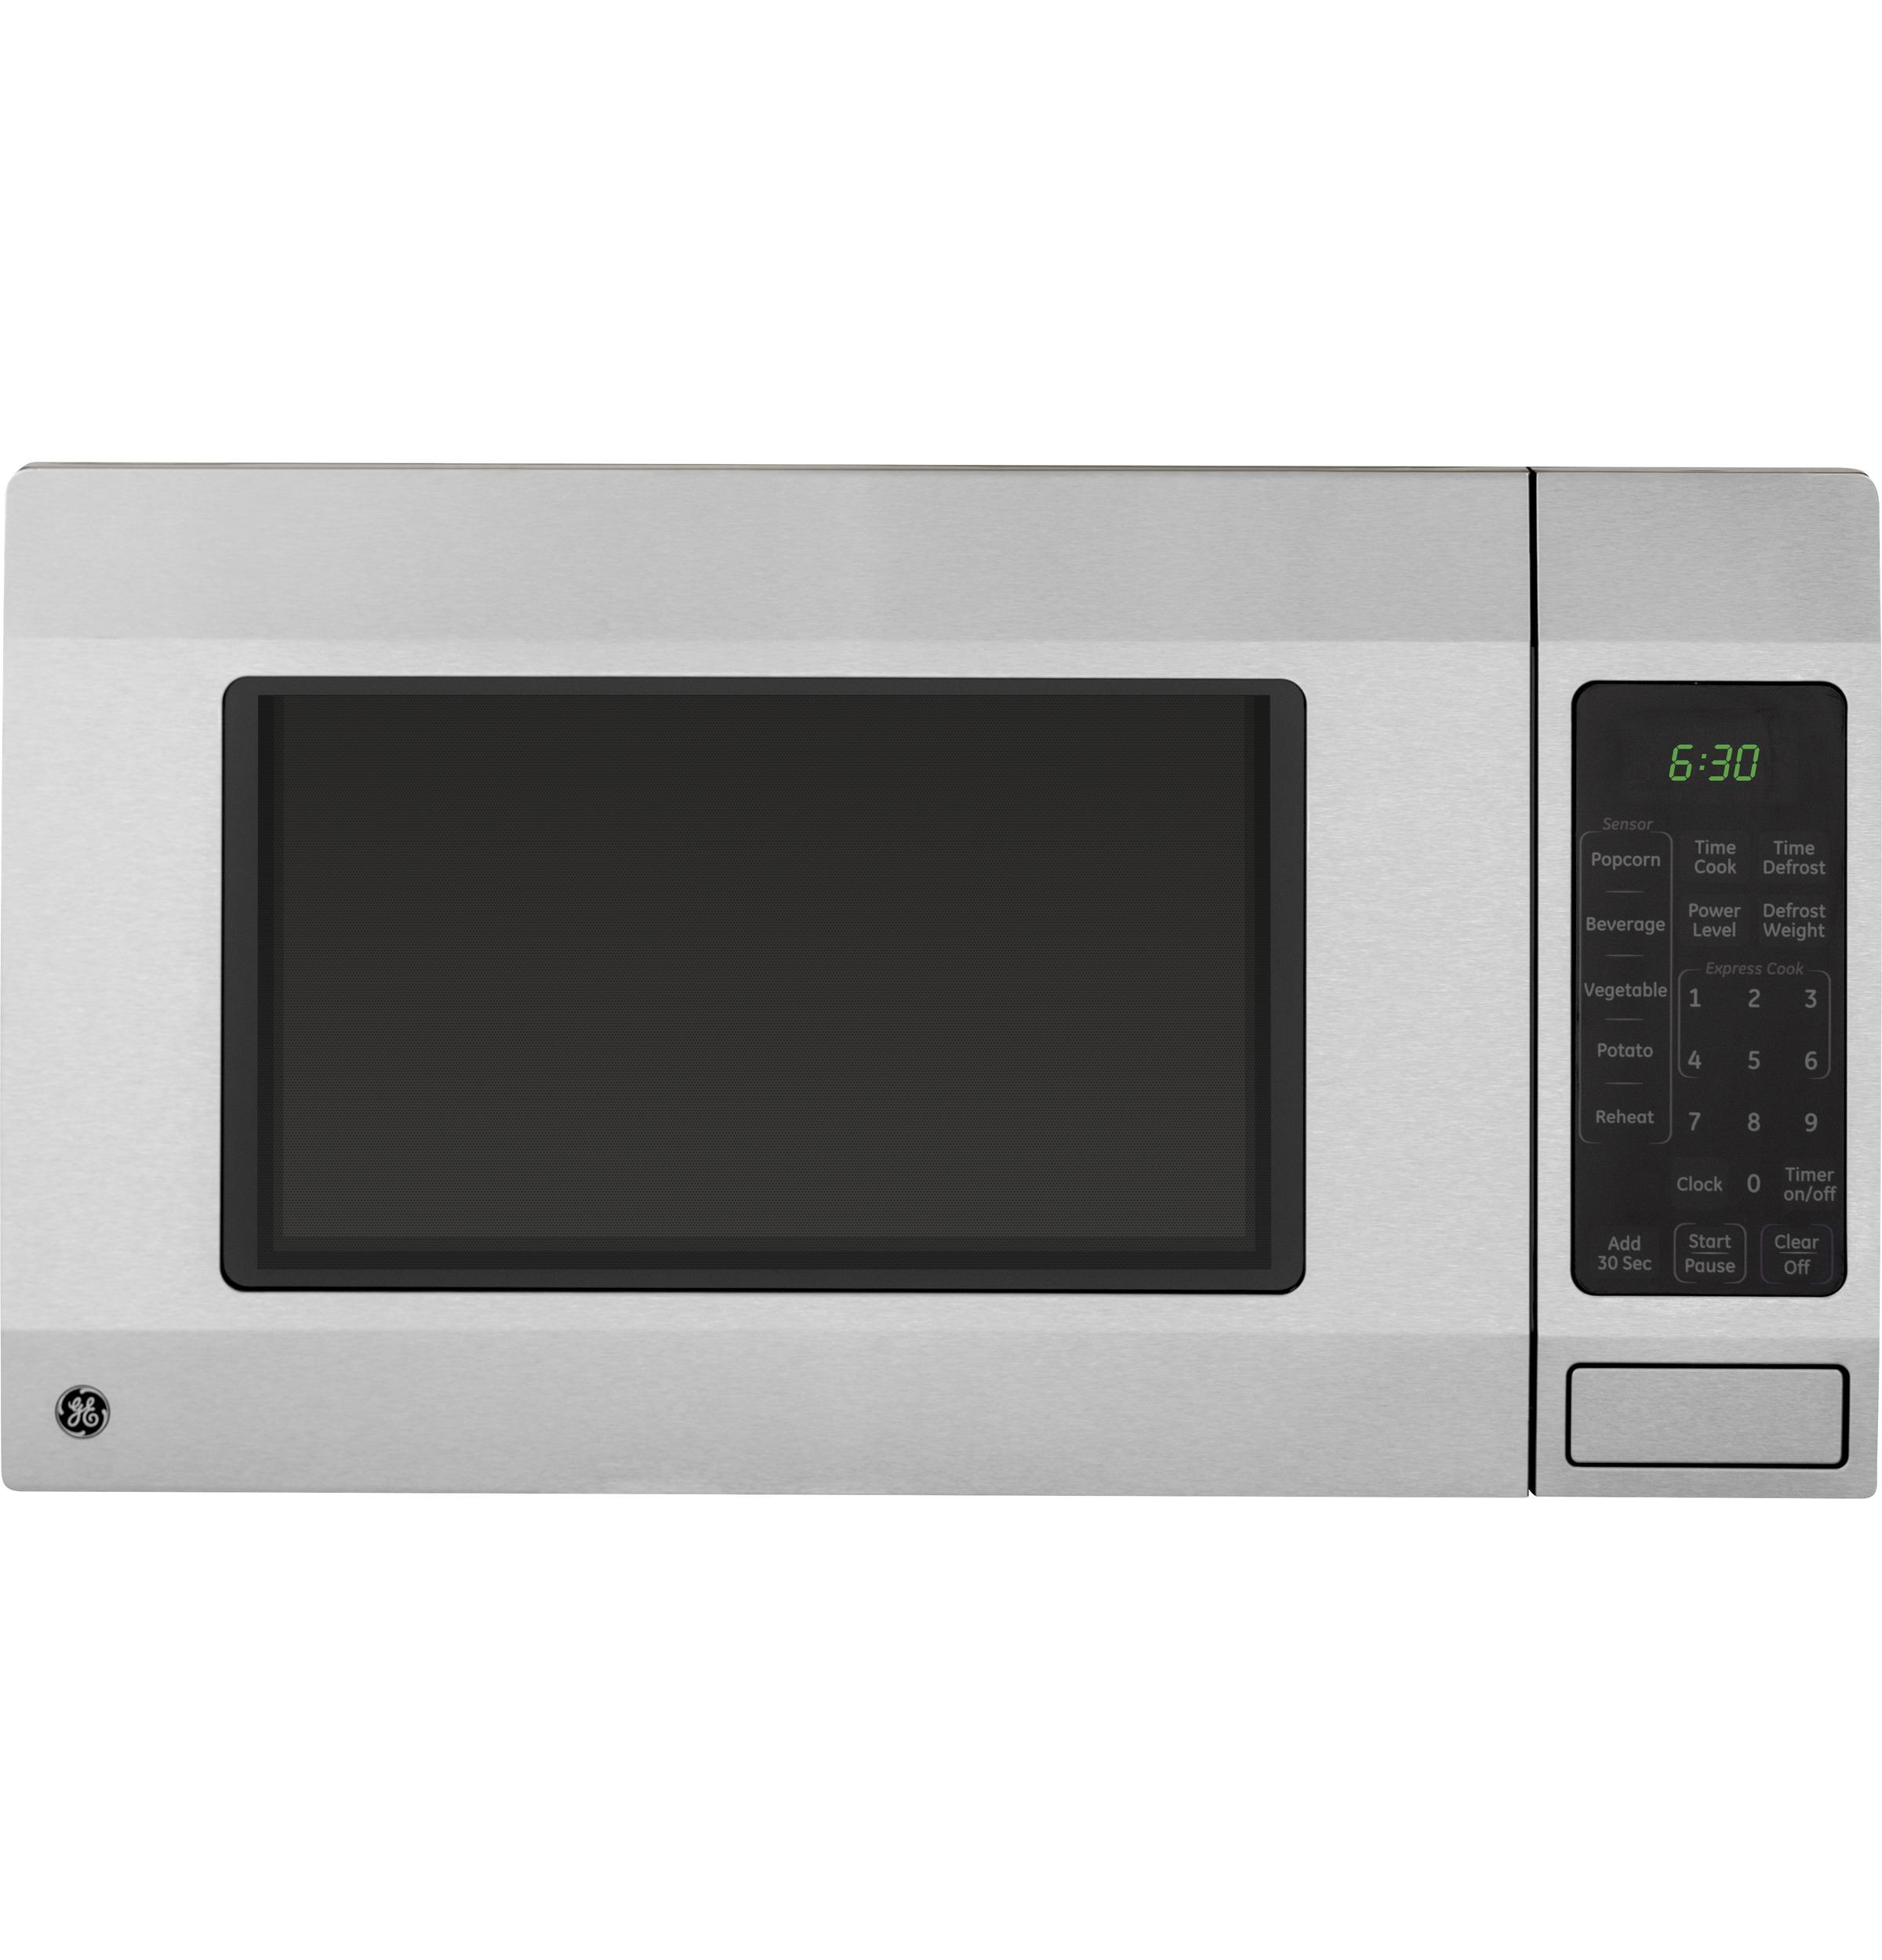 GE(R) 1.6 Cu. Ft. Countertop Microwave Oven